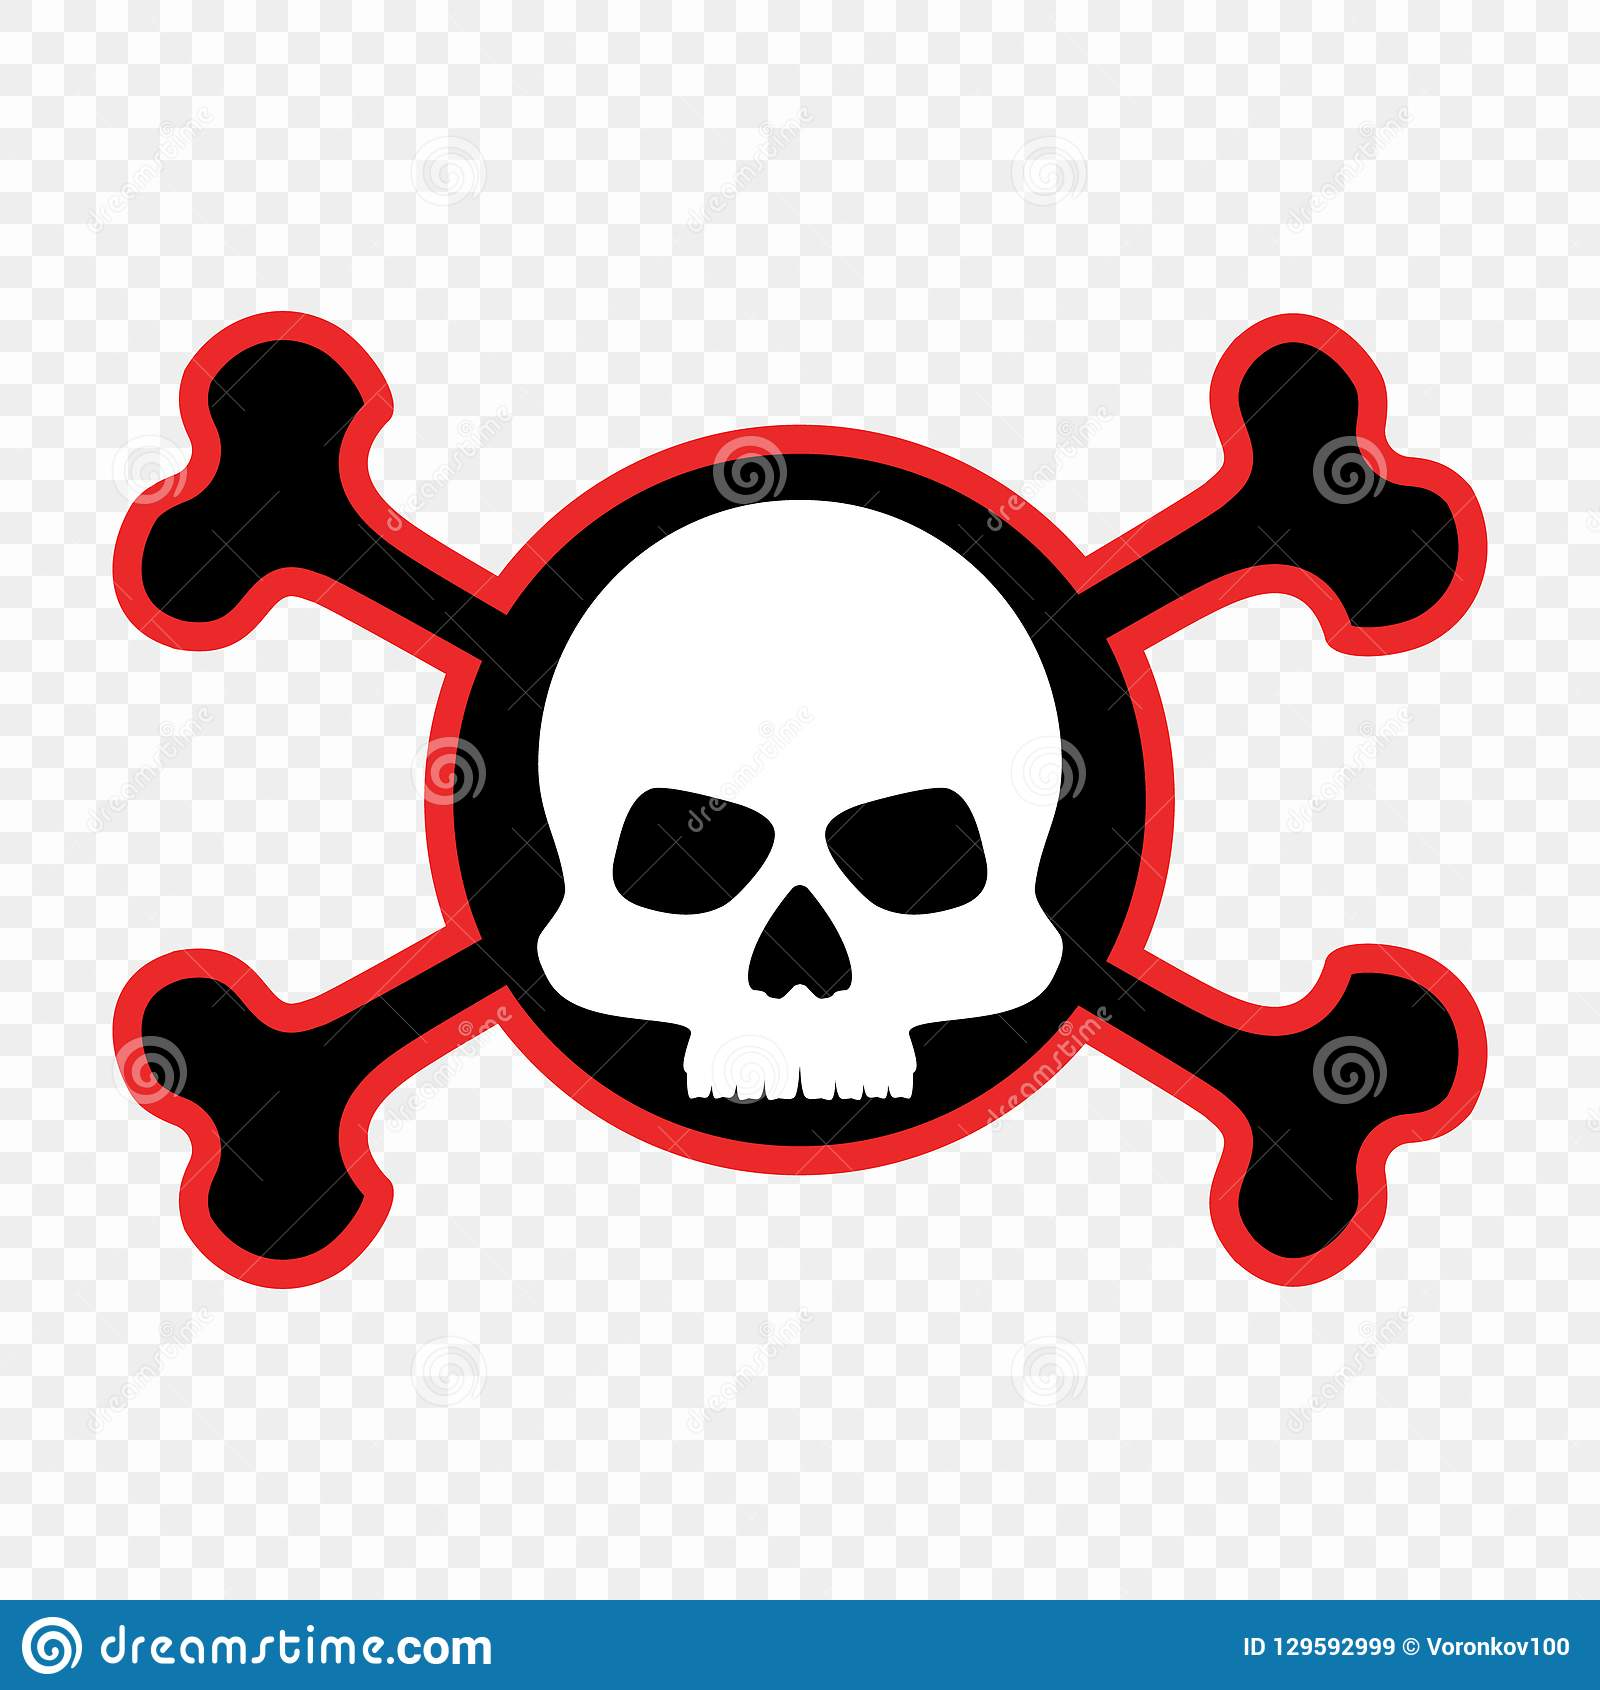 Skull And Crossbones Icon The Concept Of Warning Of Mortal Danger